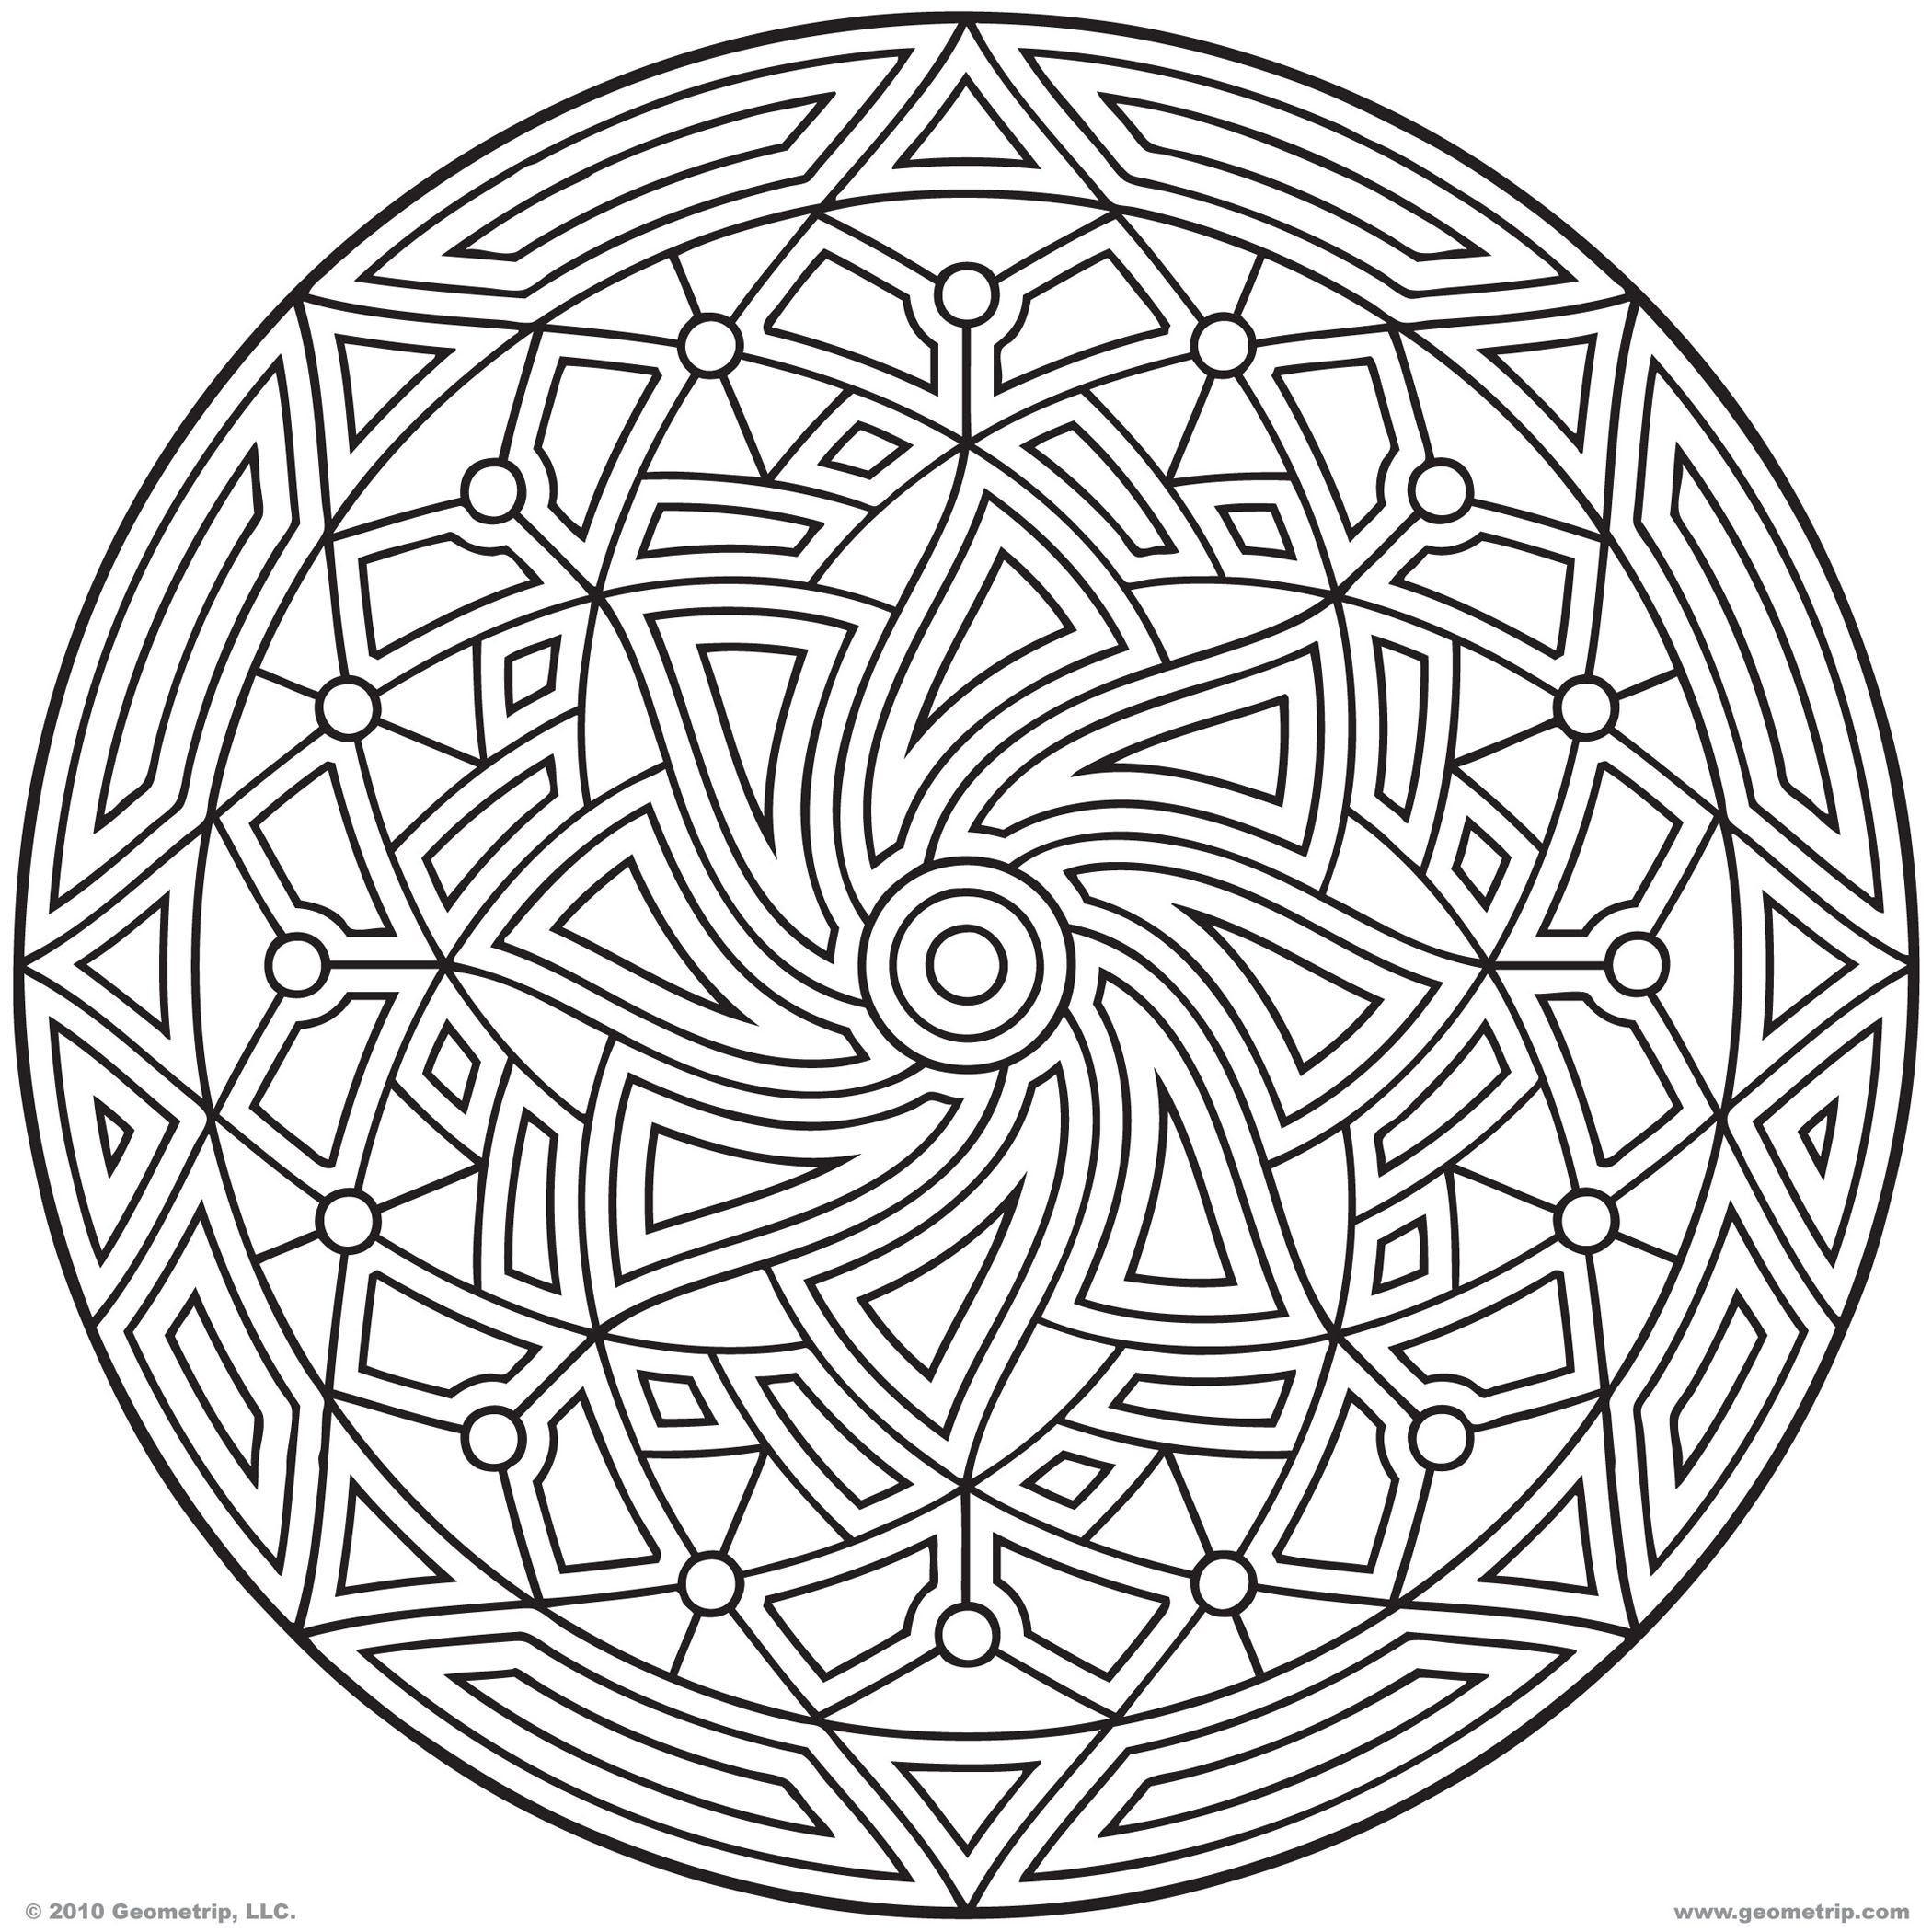 Coloring pages to print designs -